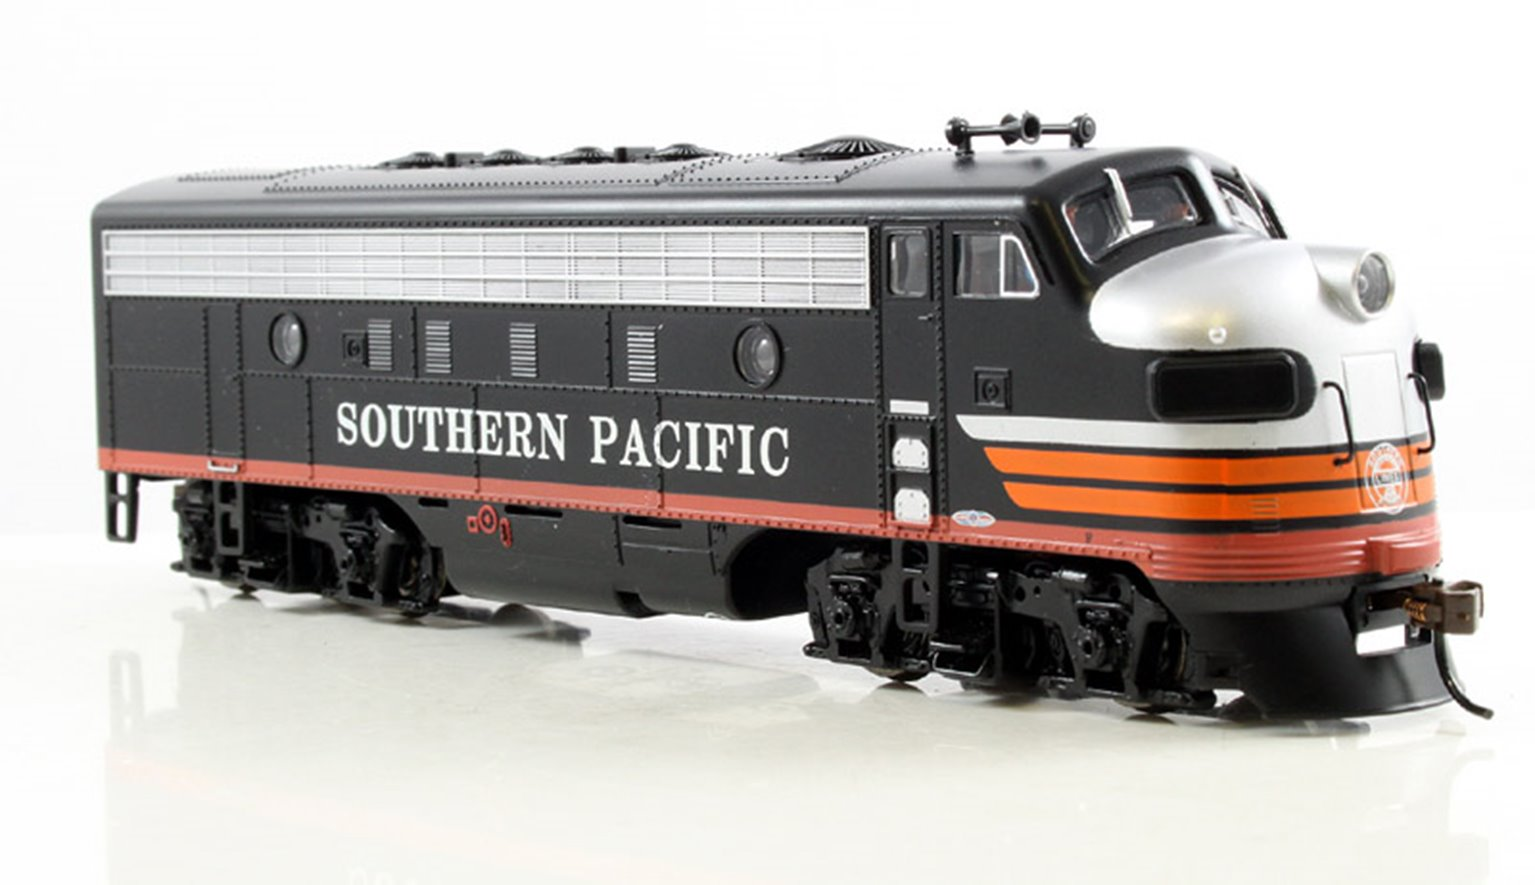 Southern Pacific F7 A Diesel Locomotive with DCC Sound